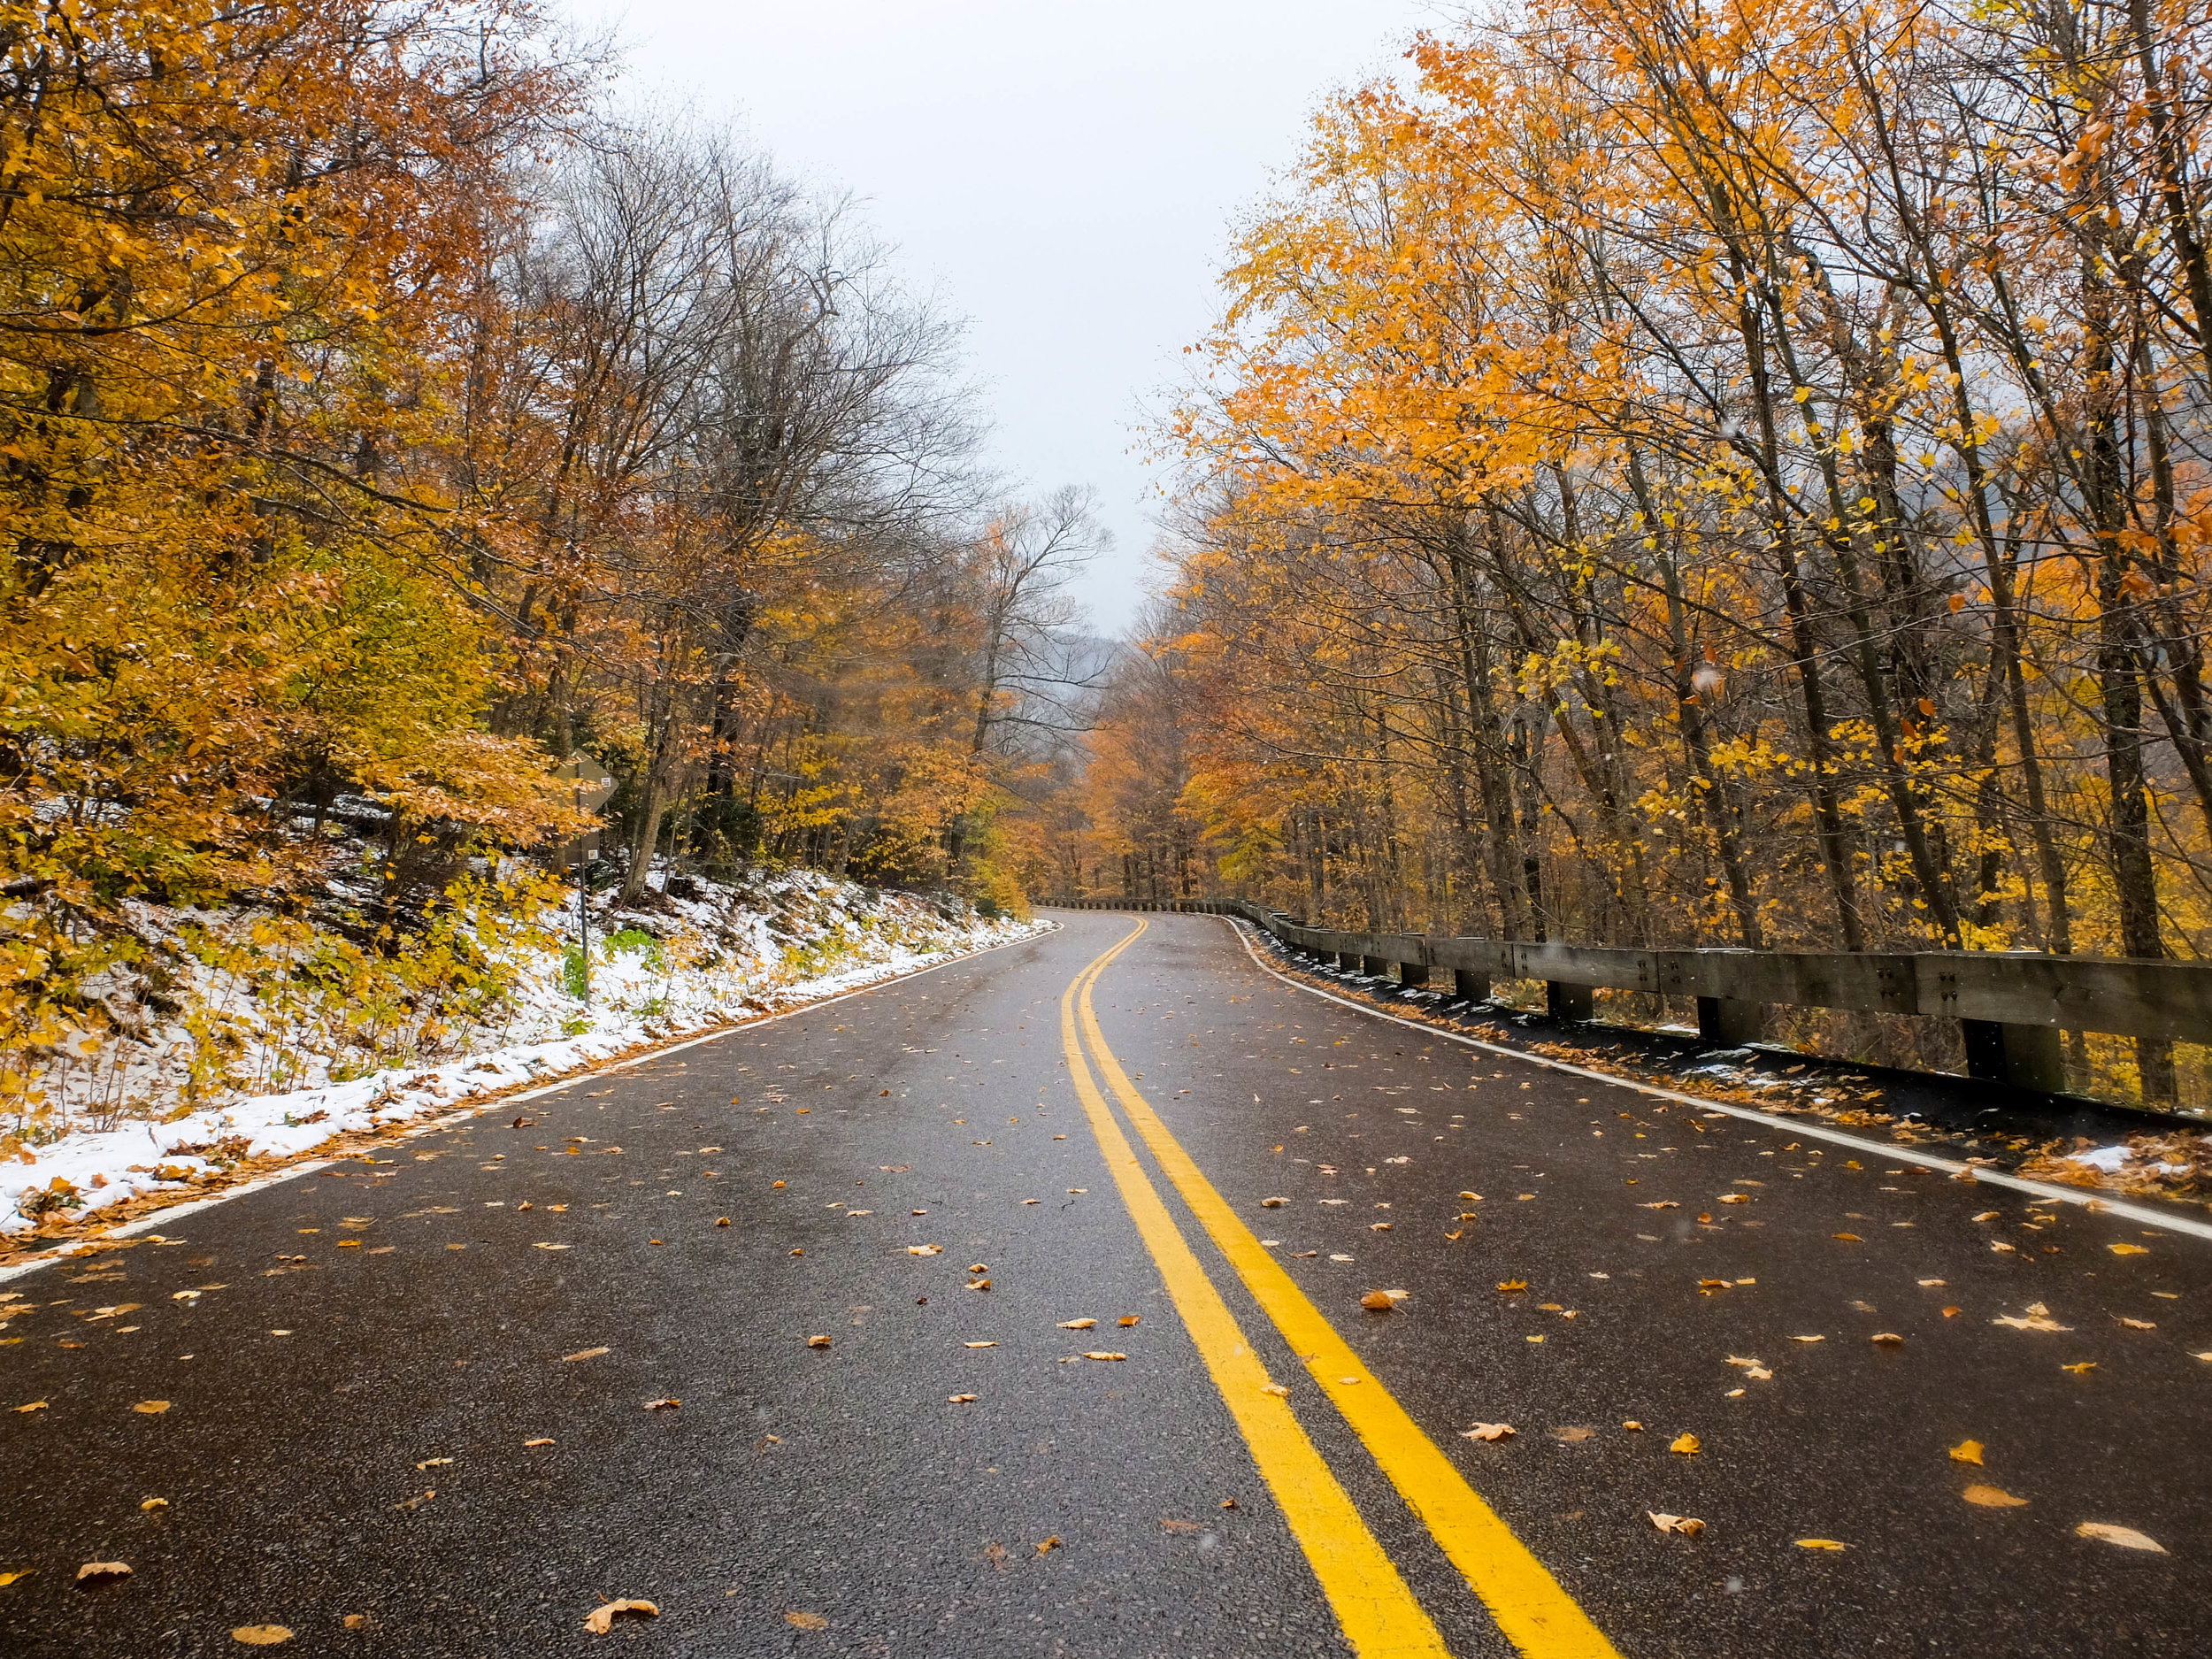 November - Mixing of the seasons, snow flurries covering late season foliage in Vermont's Smugglers Notch